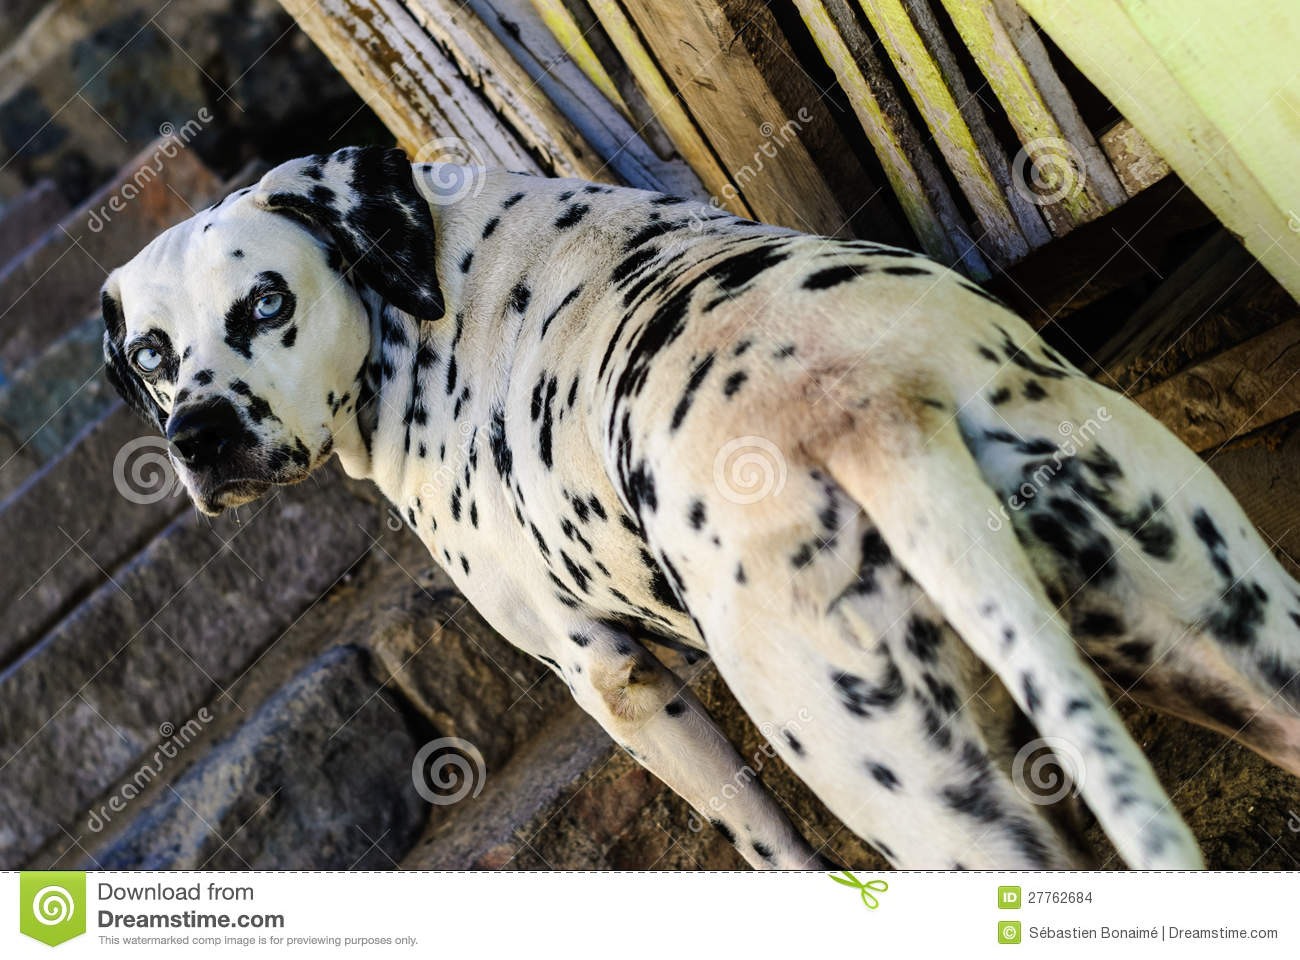 crabot dalmatien avec des yeux bleus images stock image 27762684. Black Bedroom Furniture Sets. Home Design Ideas